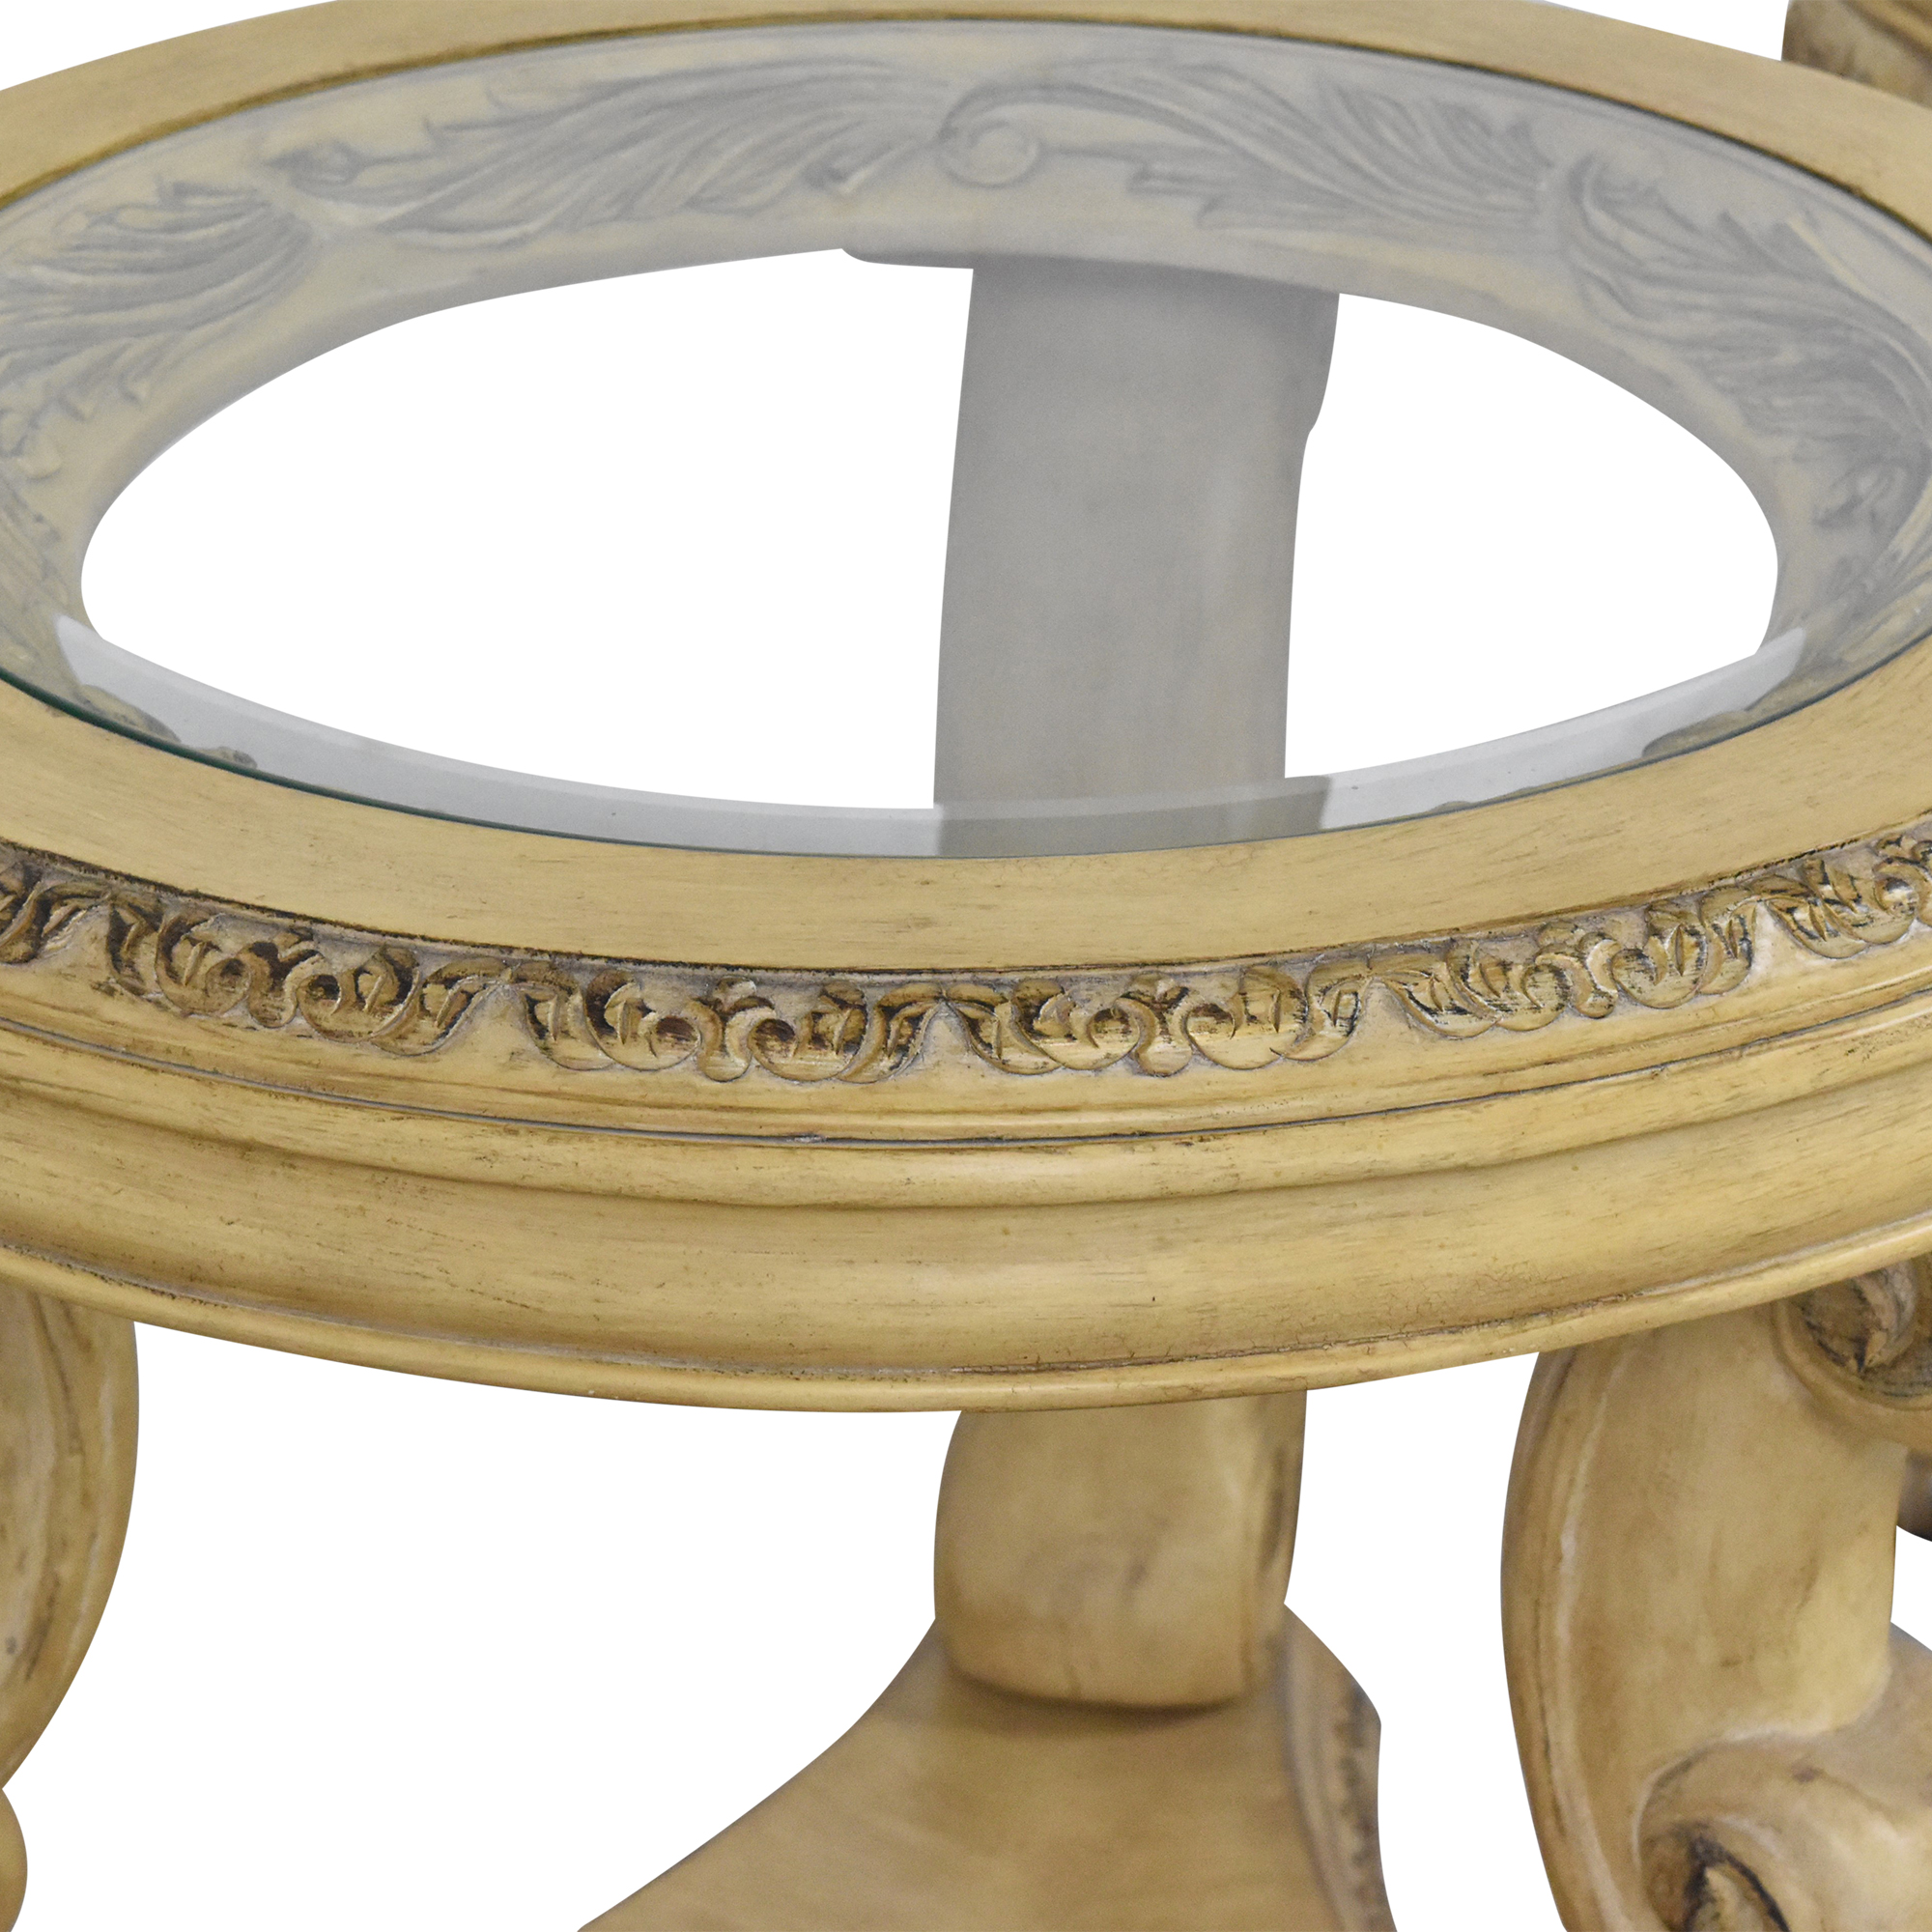 Schnadig Empire Round Side Tables sale